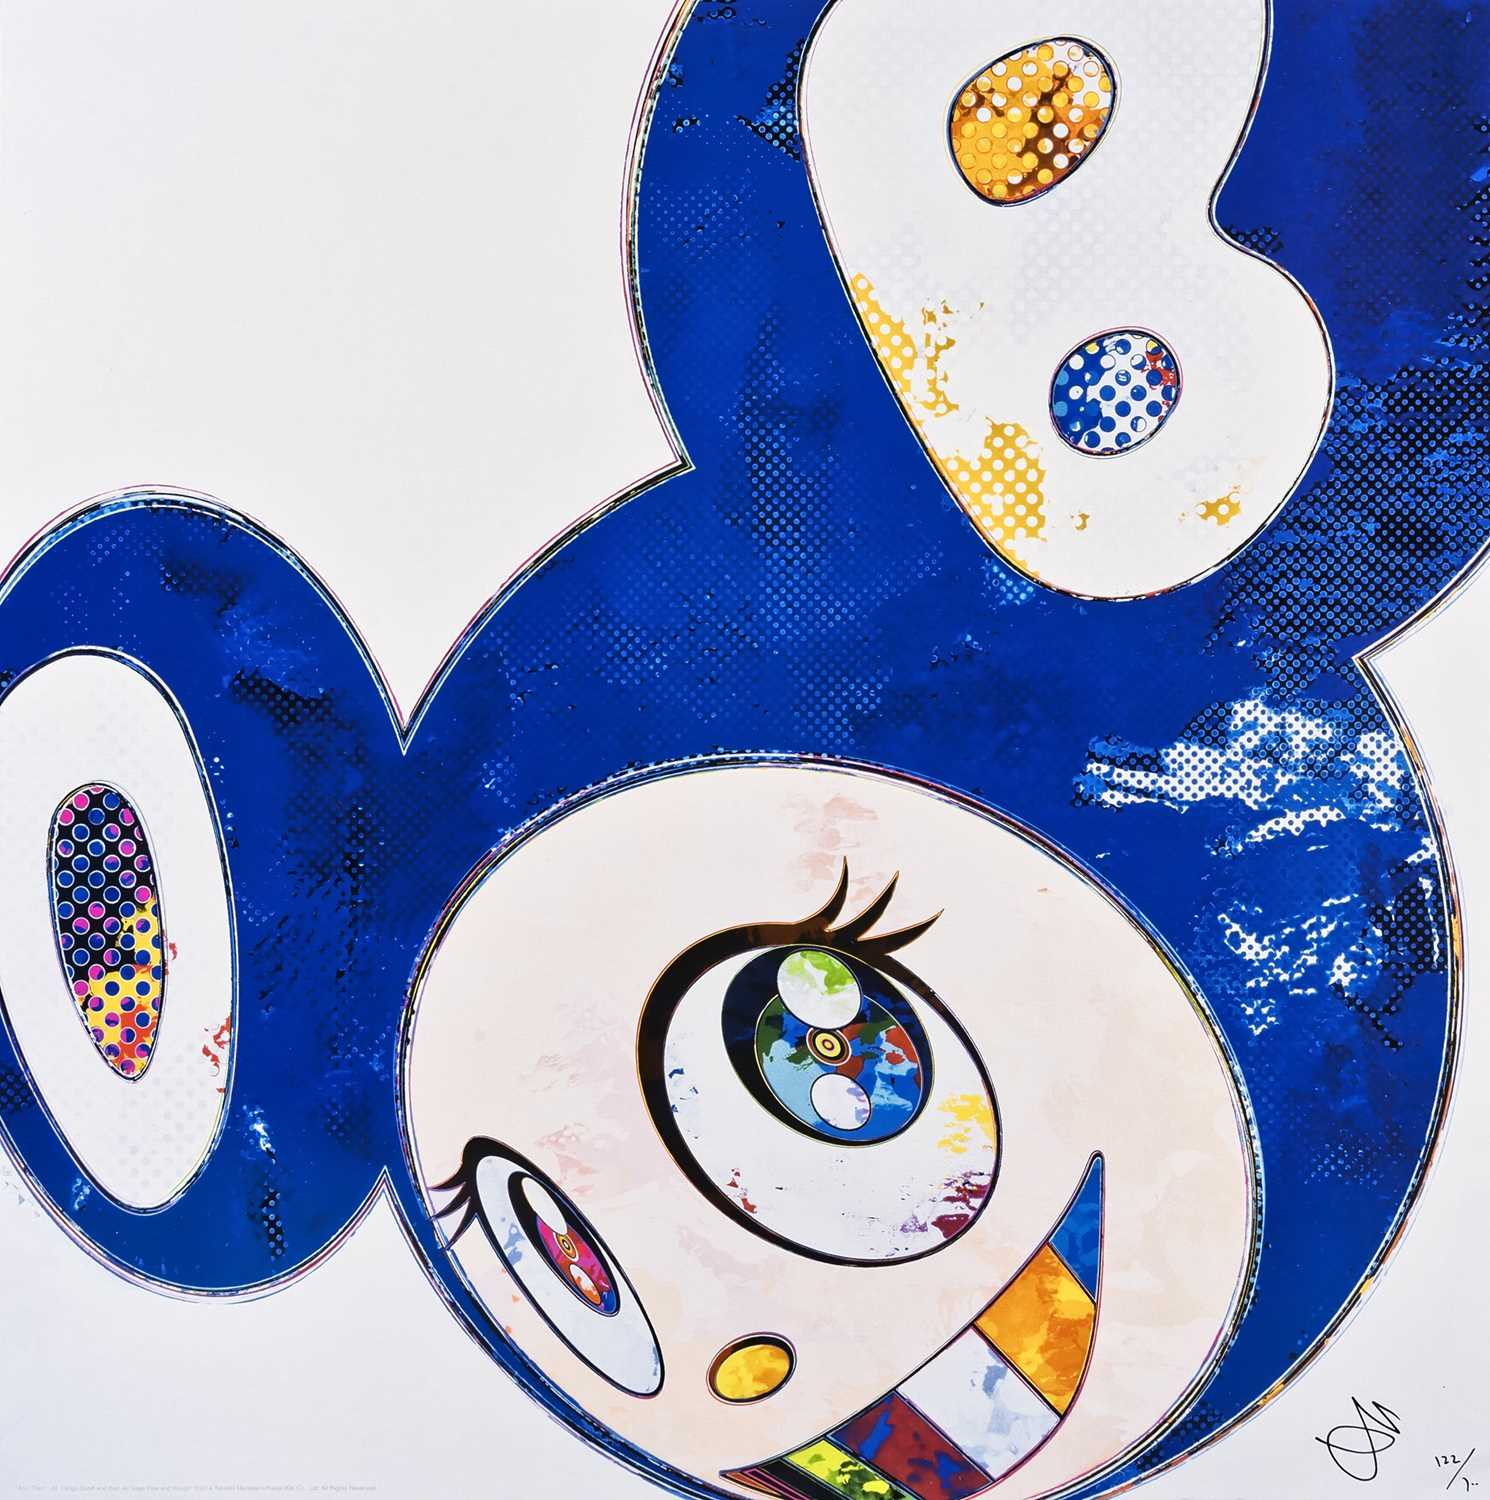 Lot 51 - Takashi Murakami (Japanese 1962-), 'And Then...All Things Good And Bad, All Days Fine And Rough', 2014